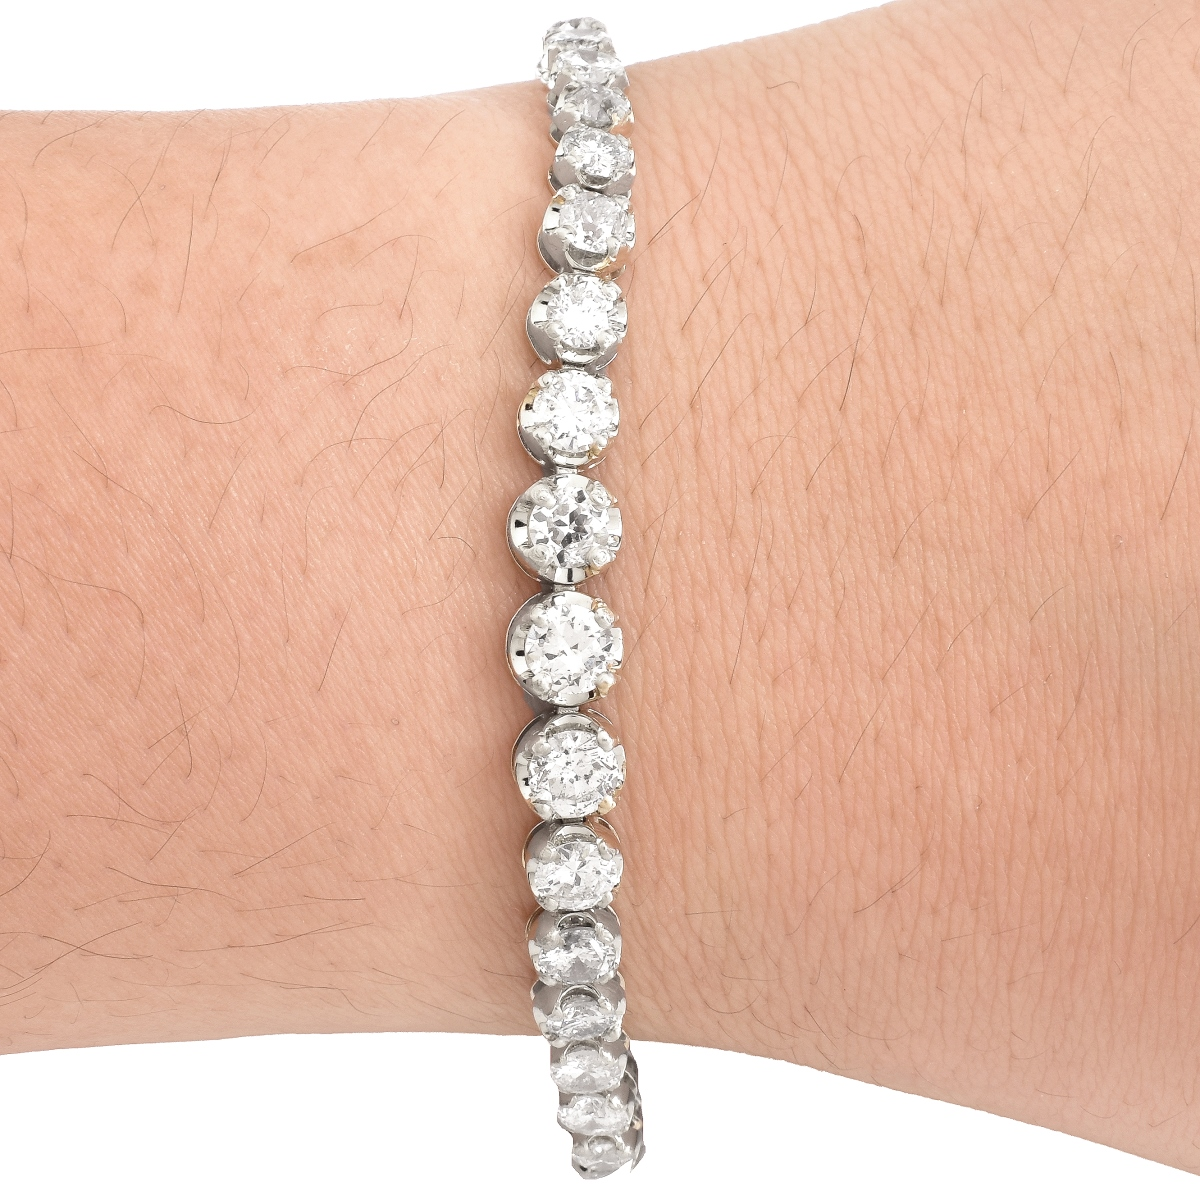 9.27 Carat Diamond and 18K Gold Bracelet